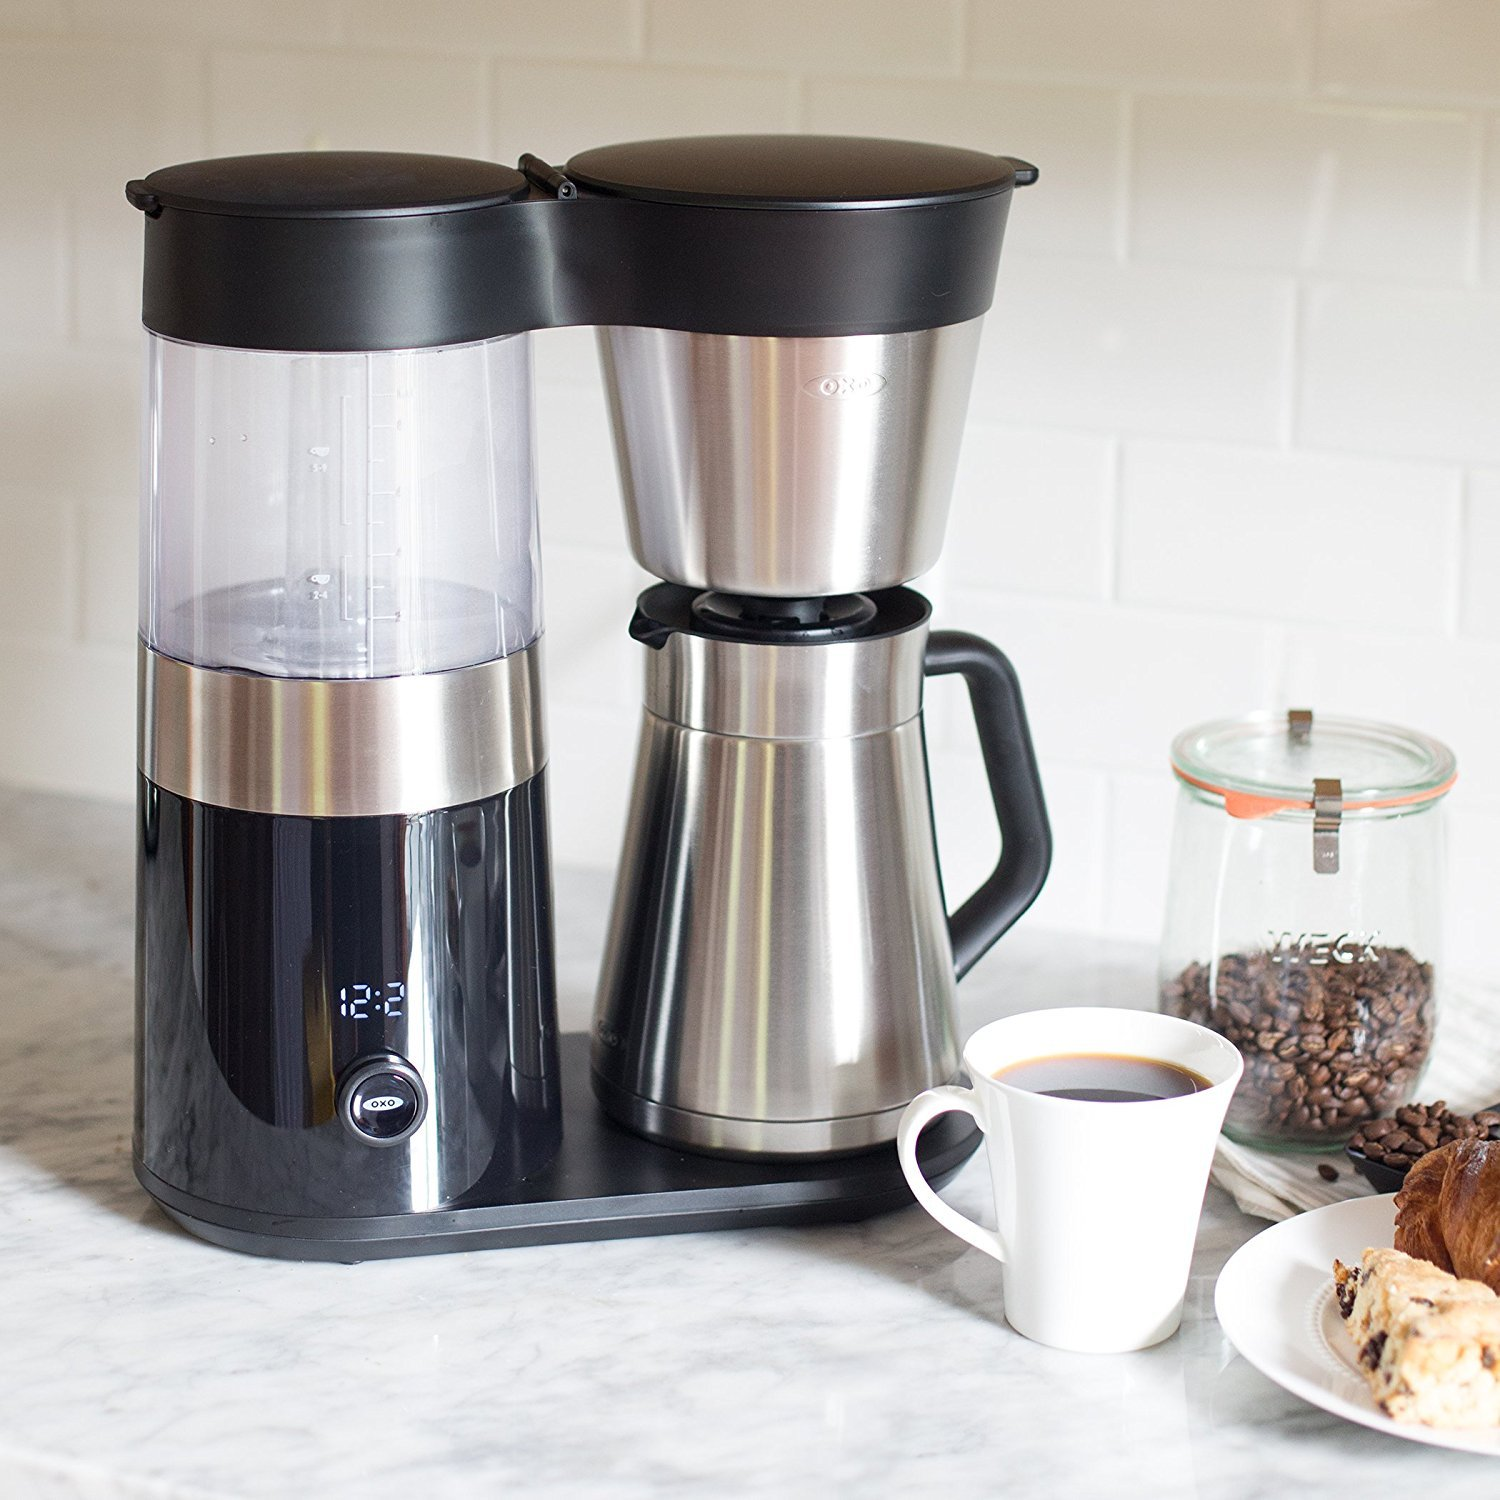 OXO On Barista Brain 9 Cup Coffee Maker by OXO (Image #6)